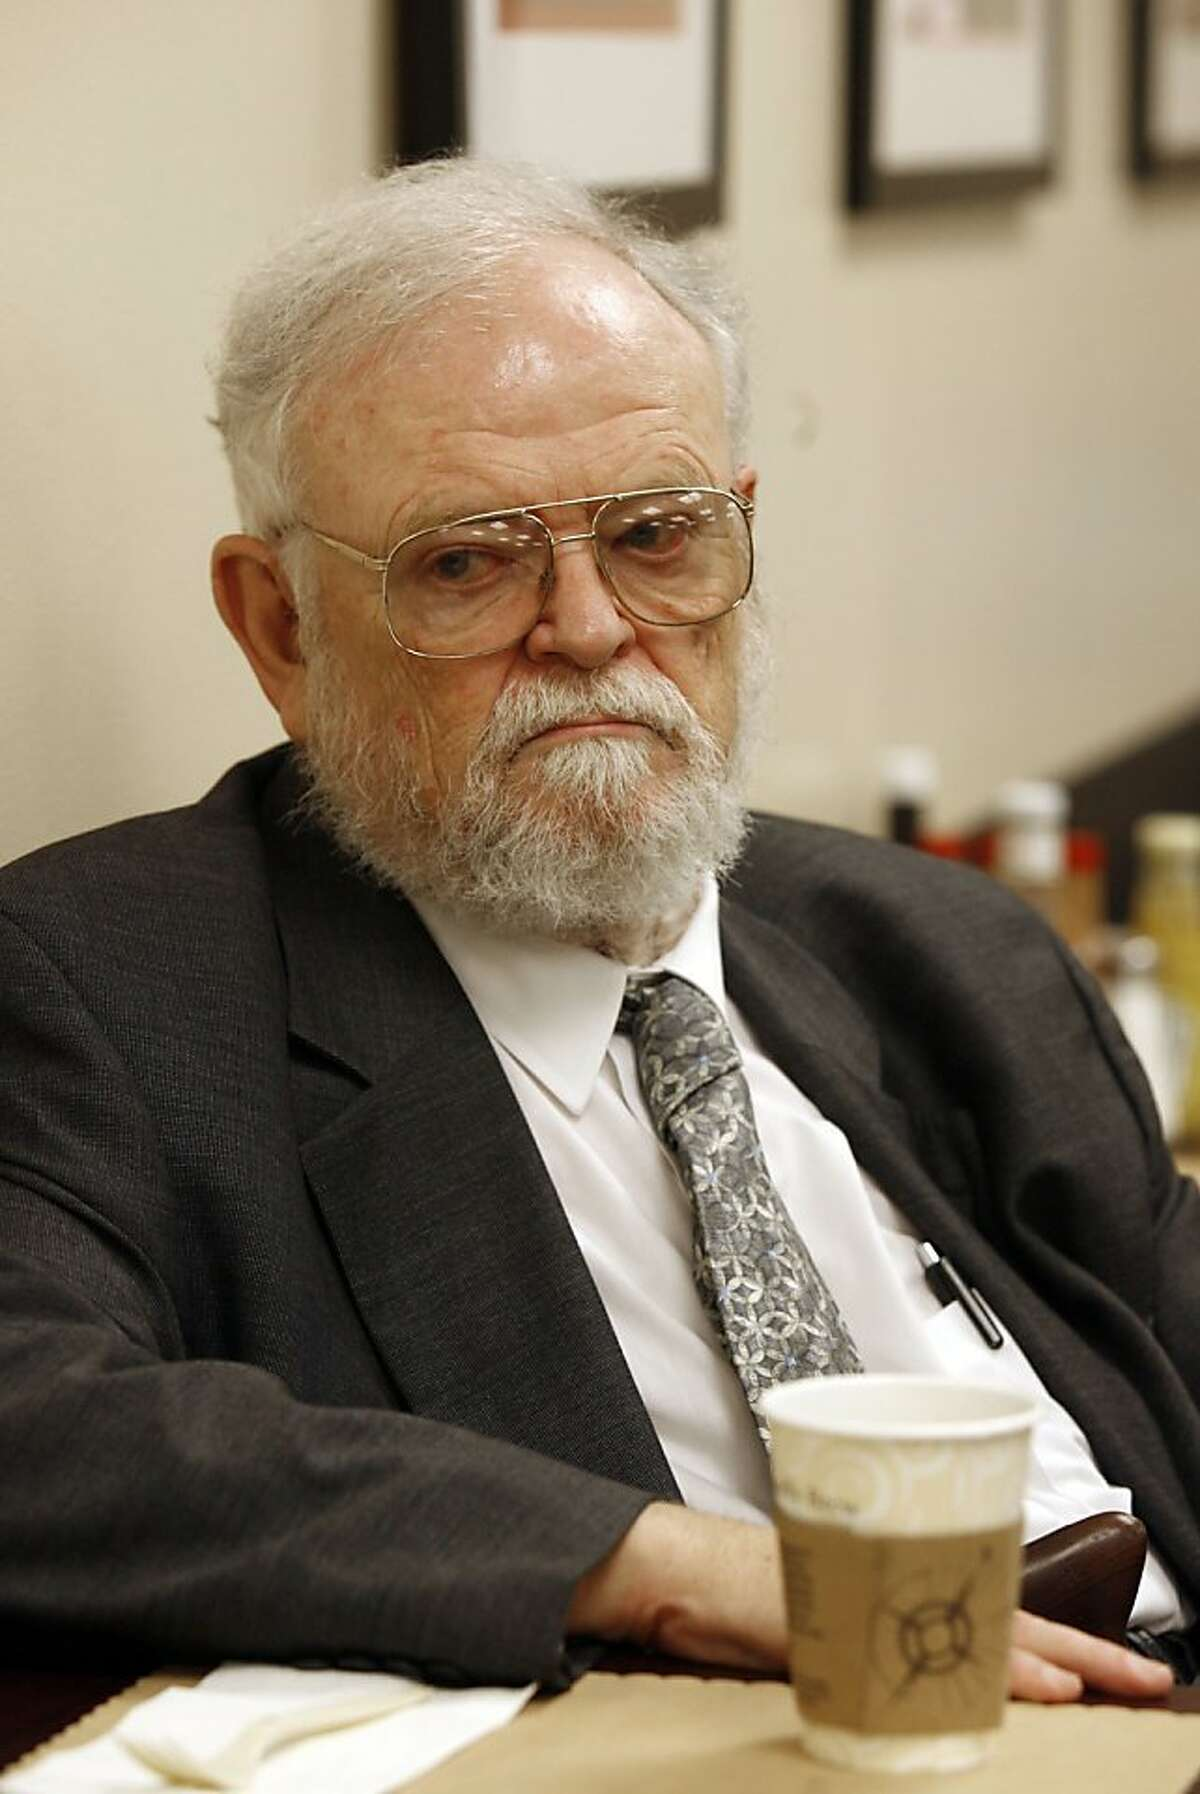 Dr. William Ayres is accused of molesting seven boys in the 1990s while he was a child psychiatrist.